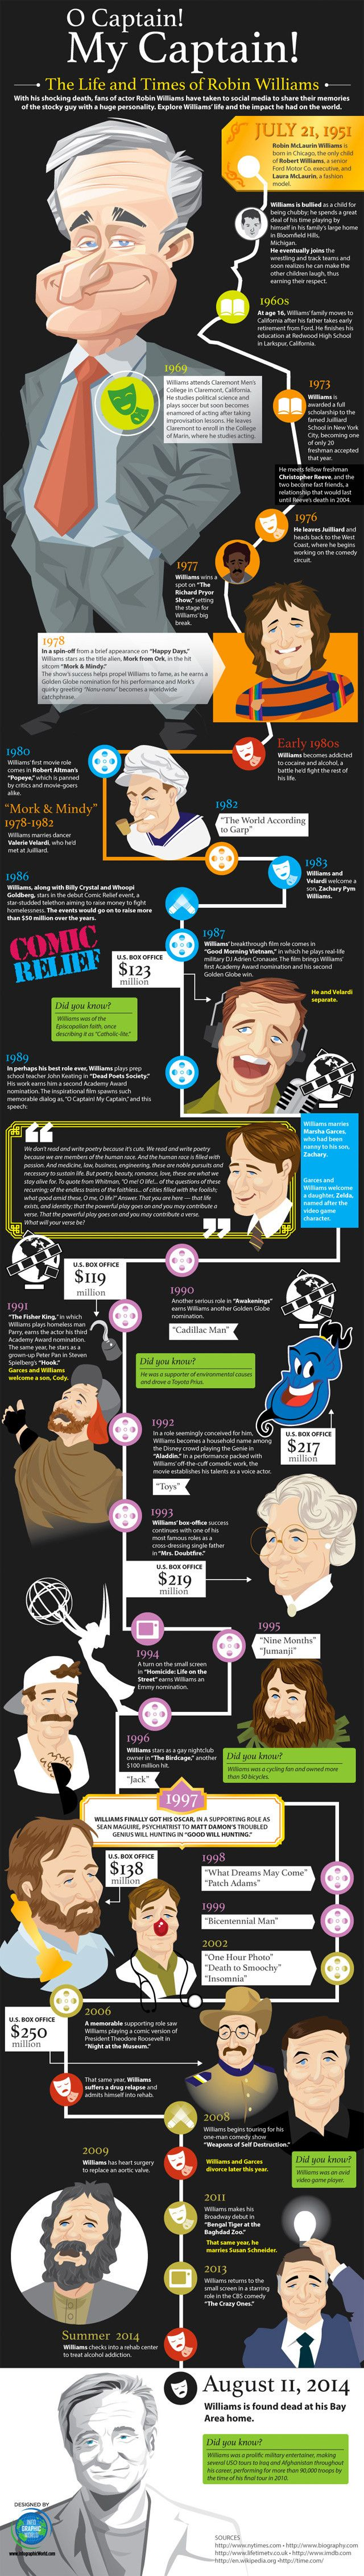 The Life And Times of Robin Williams infographic #RobinWilliams #Celebrity